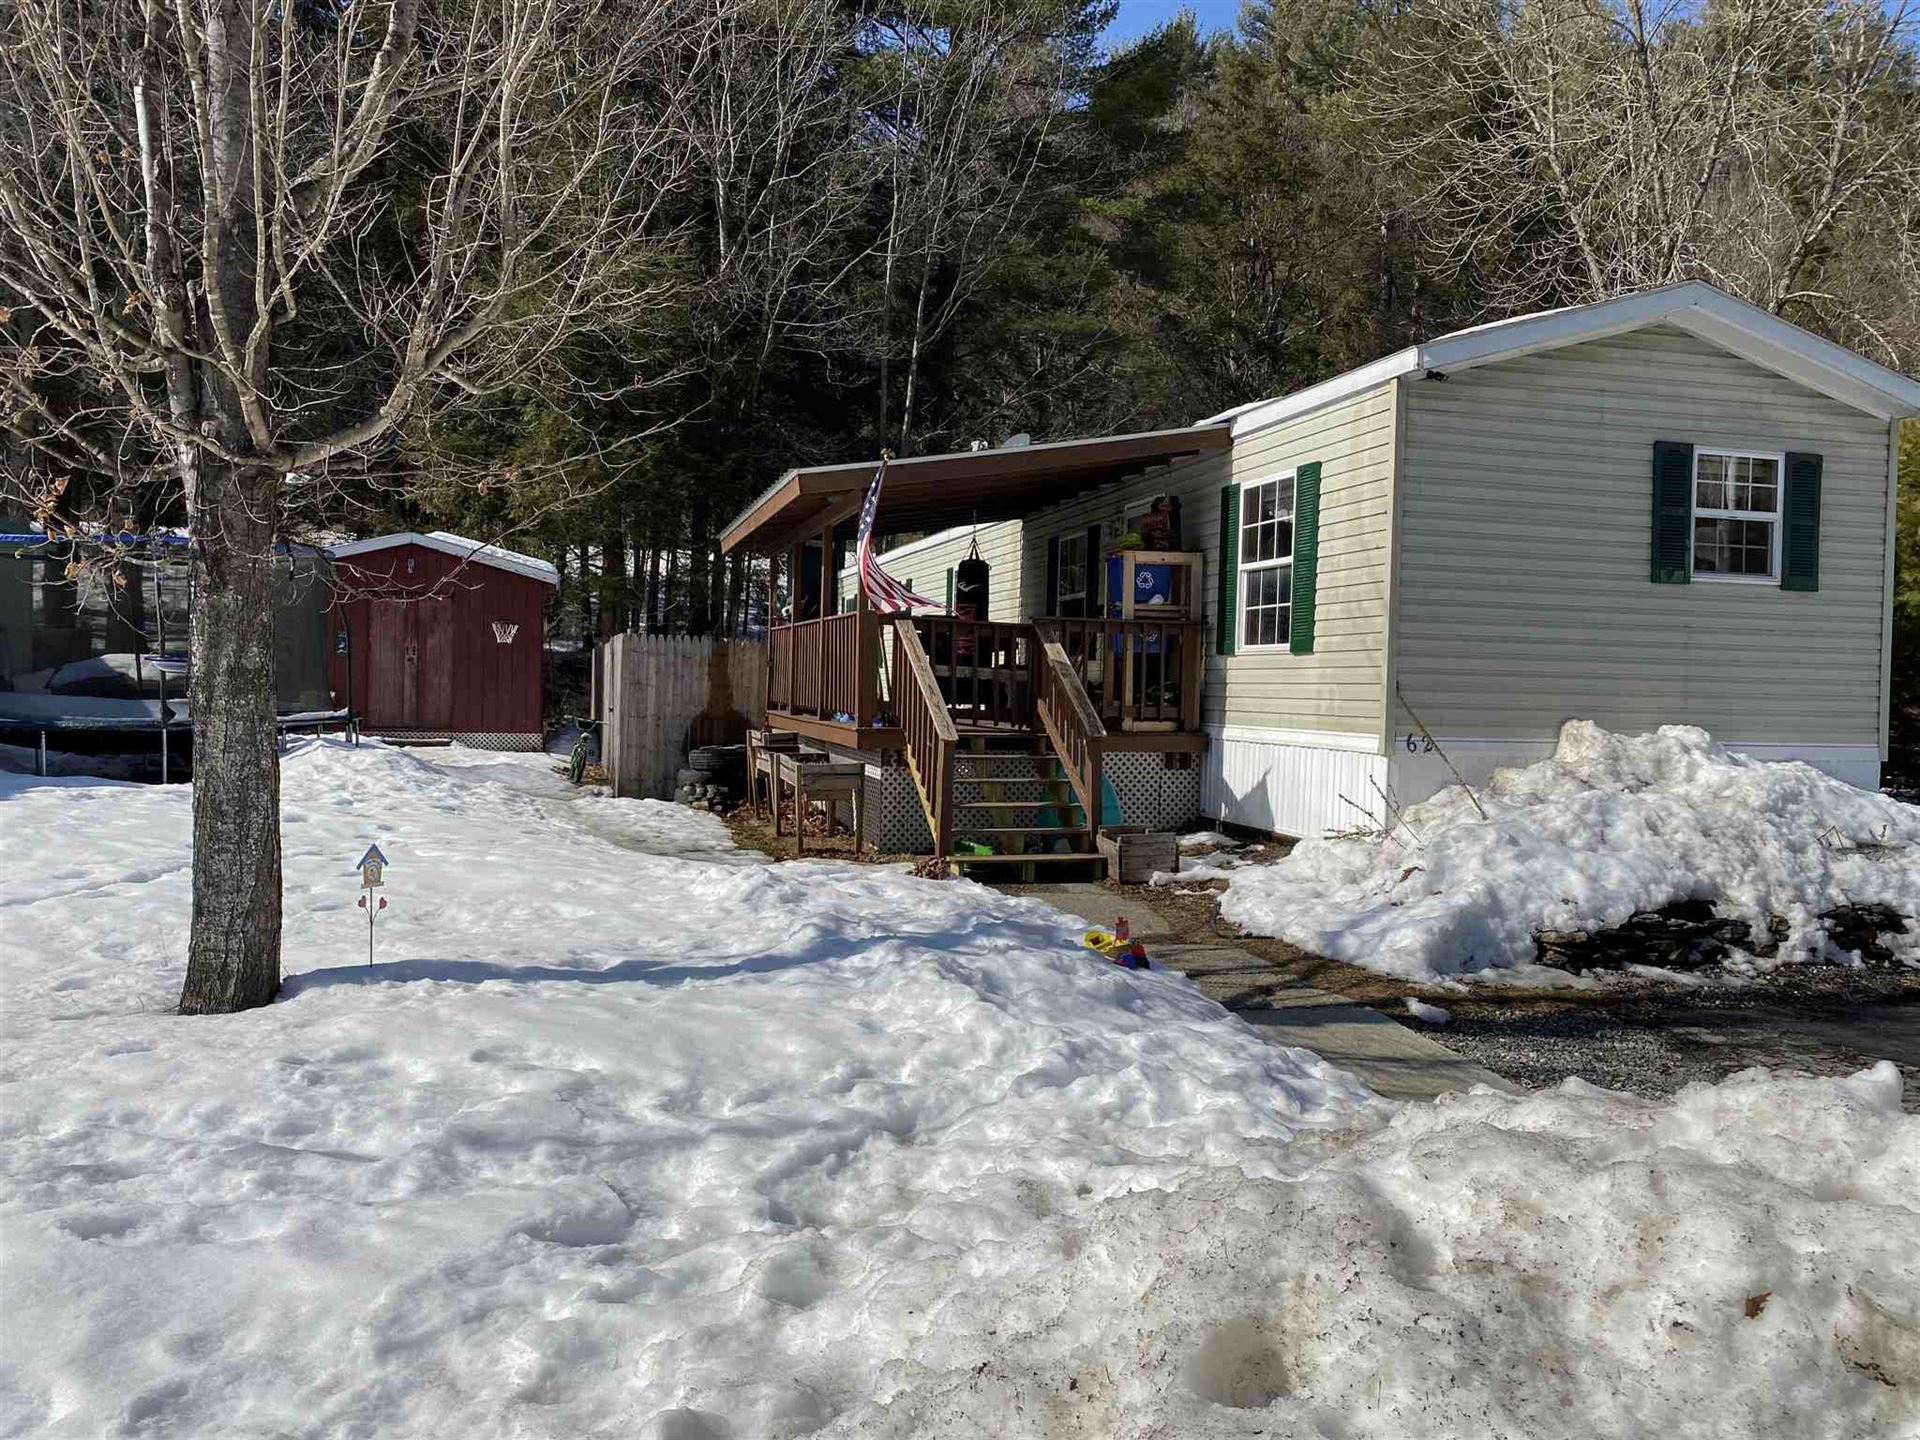 62 Valley Road, Brattleboro, VT 05301 - MLS#: 4795523